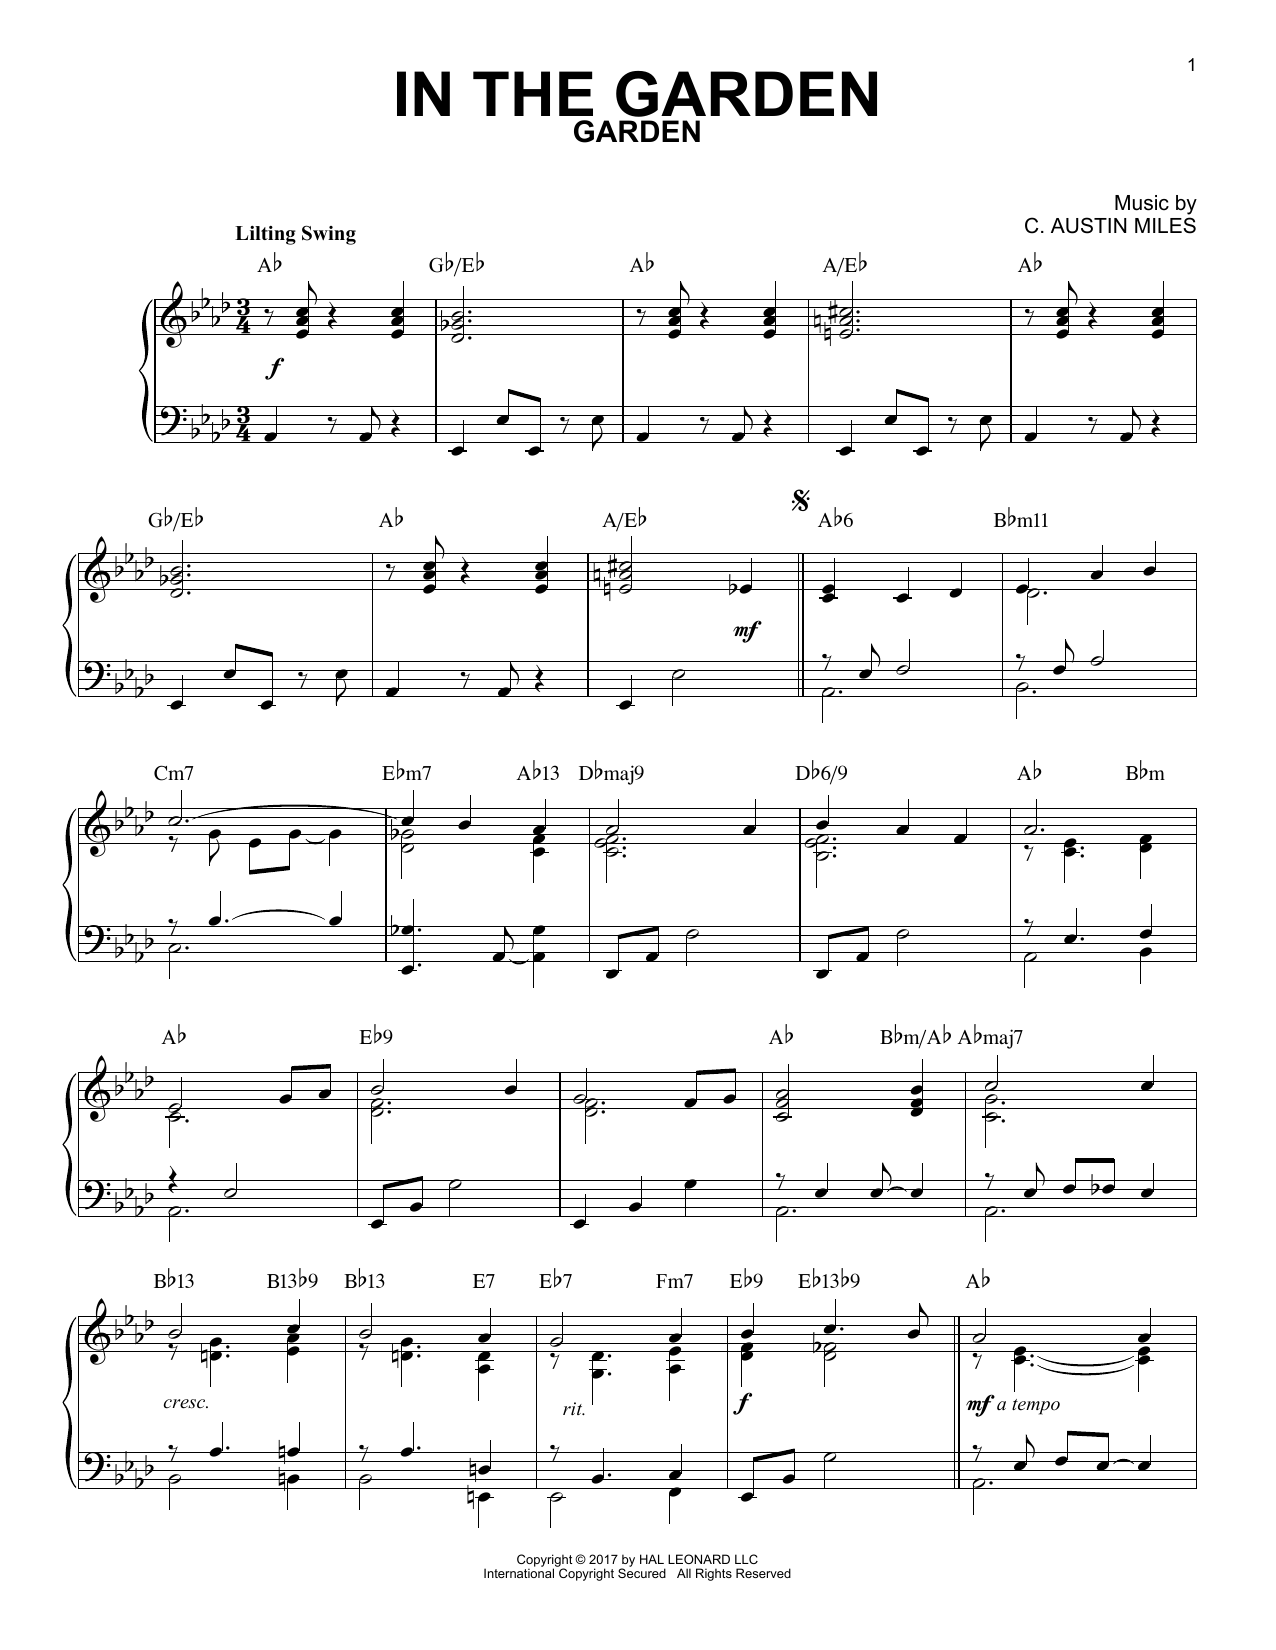 C. Austin Miles In The Garden [Jazz version] sheet music notes and chords. Download Printable PDF.